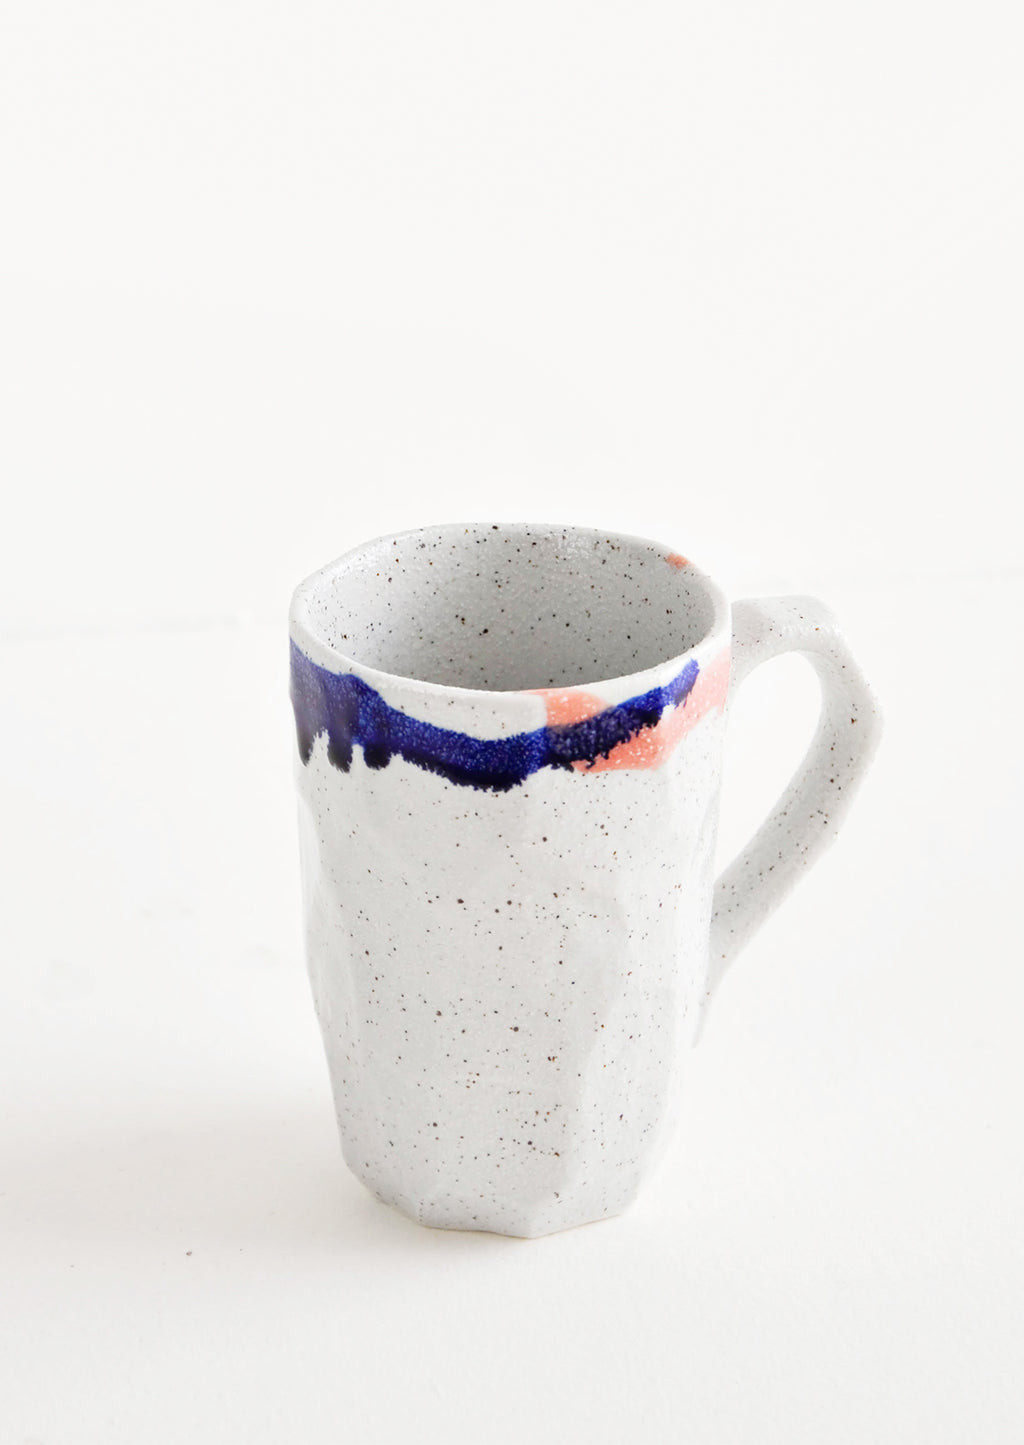 12 oz [$24.00]: A tall gray ceramic mug with blue, green, and pink painted rims.